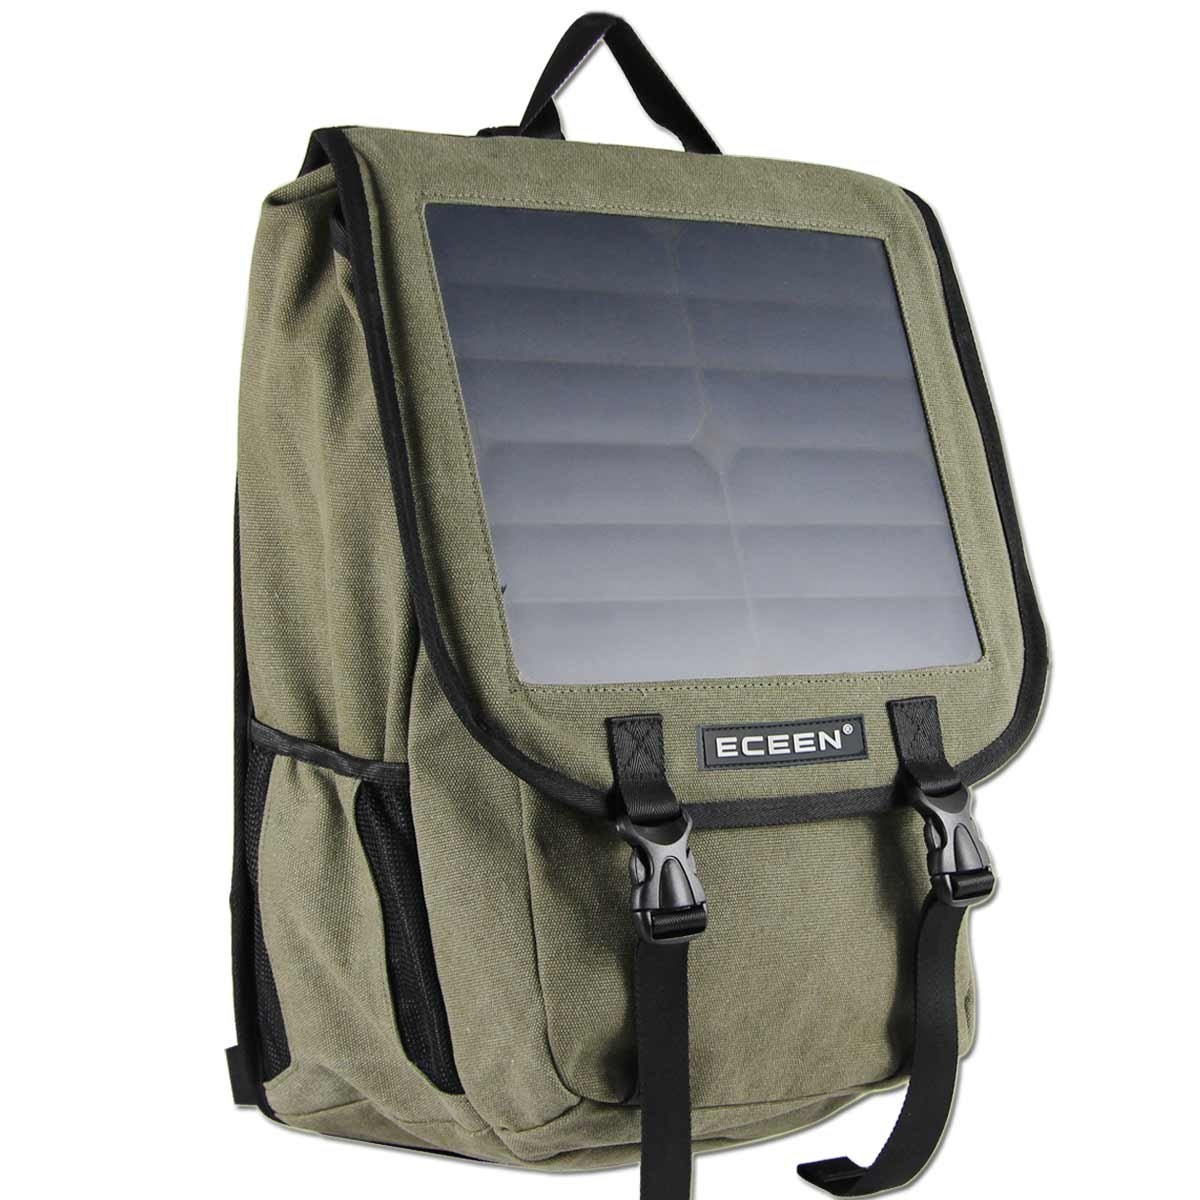 ECEEN Solar Backpack Bag Make By Canvas Material with 10 Watts Solar Charger Panel for Cell Phones, Tablets, Digital Cameras Etc. 5v Device